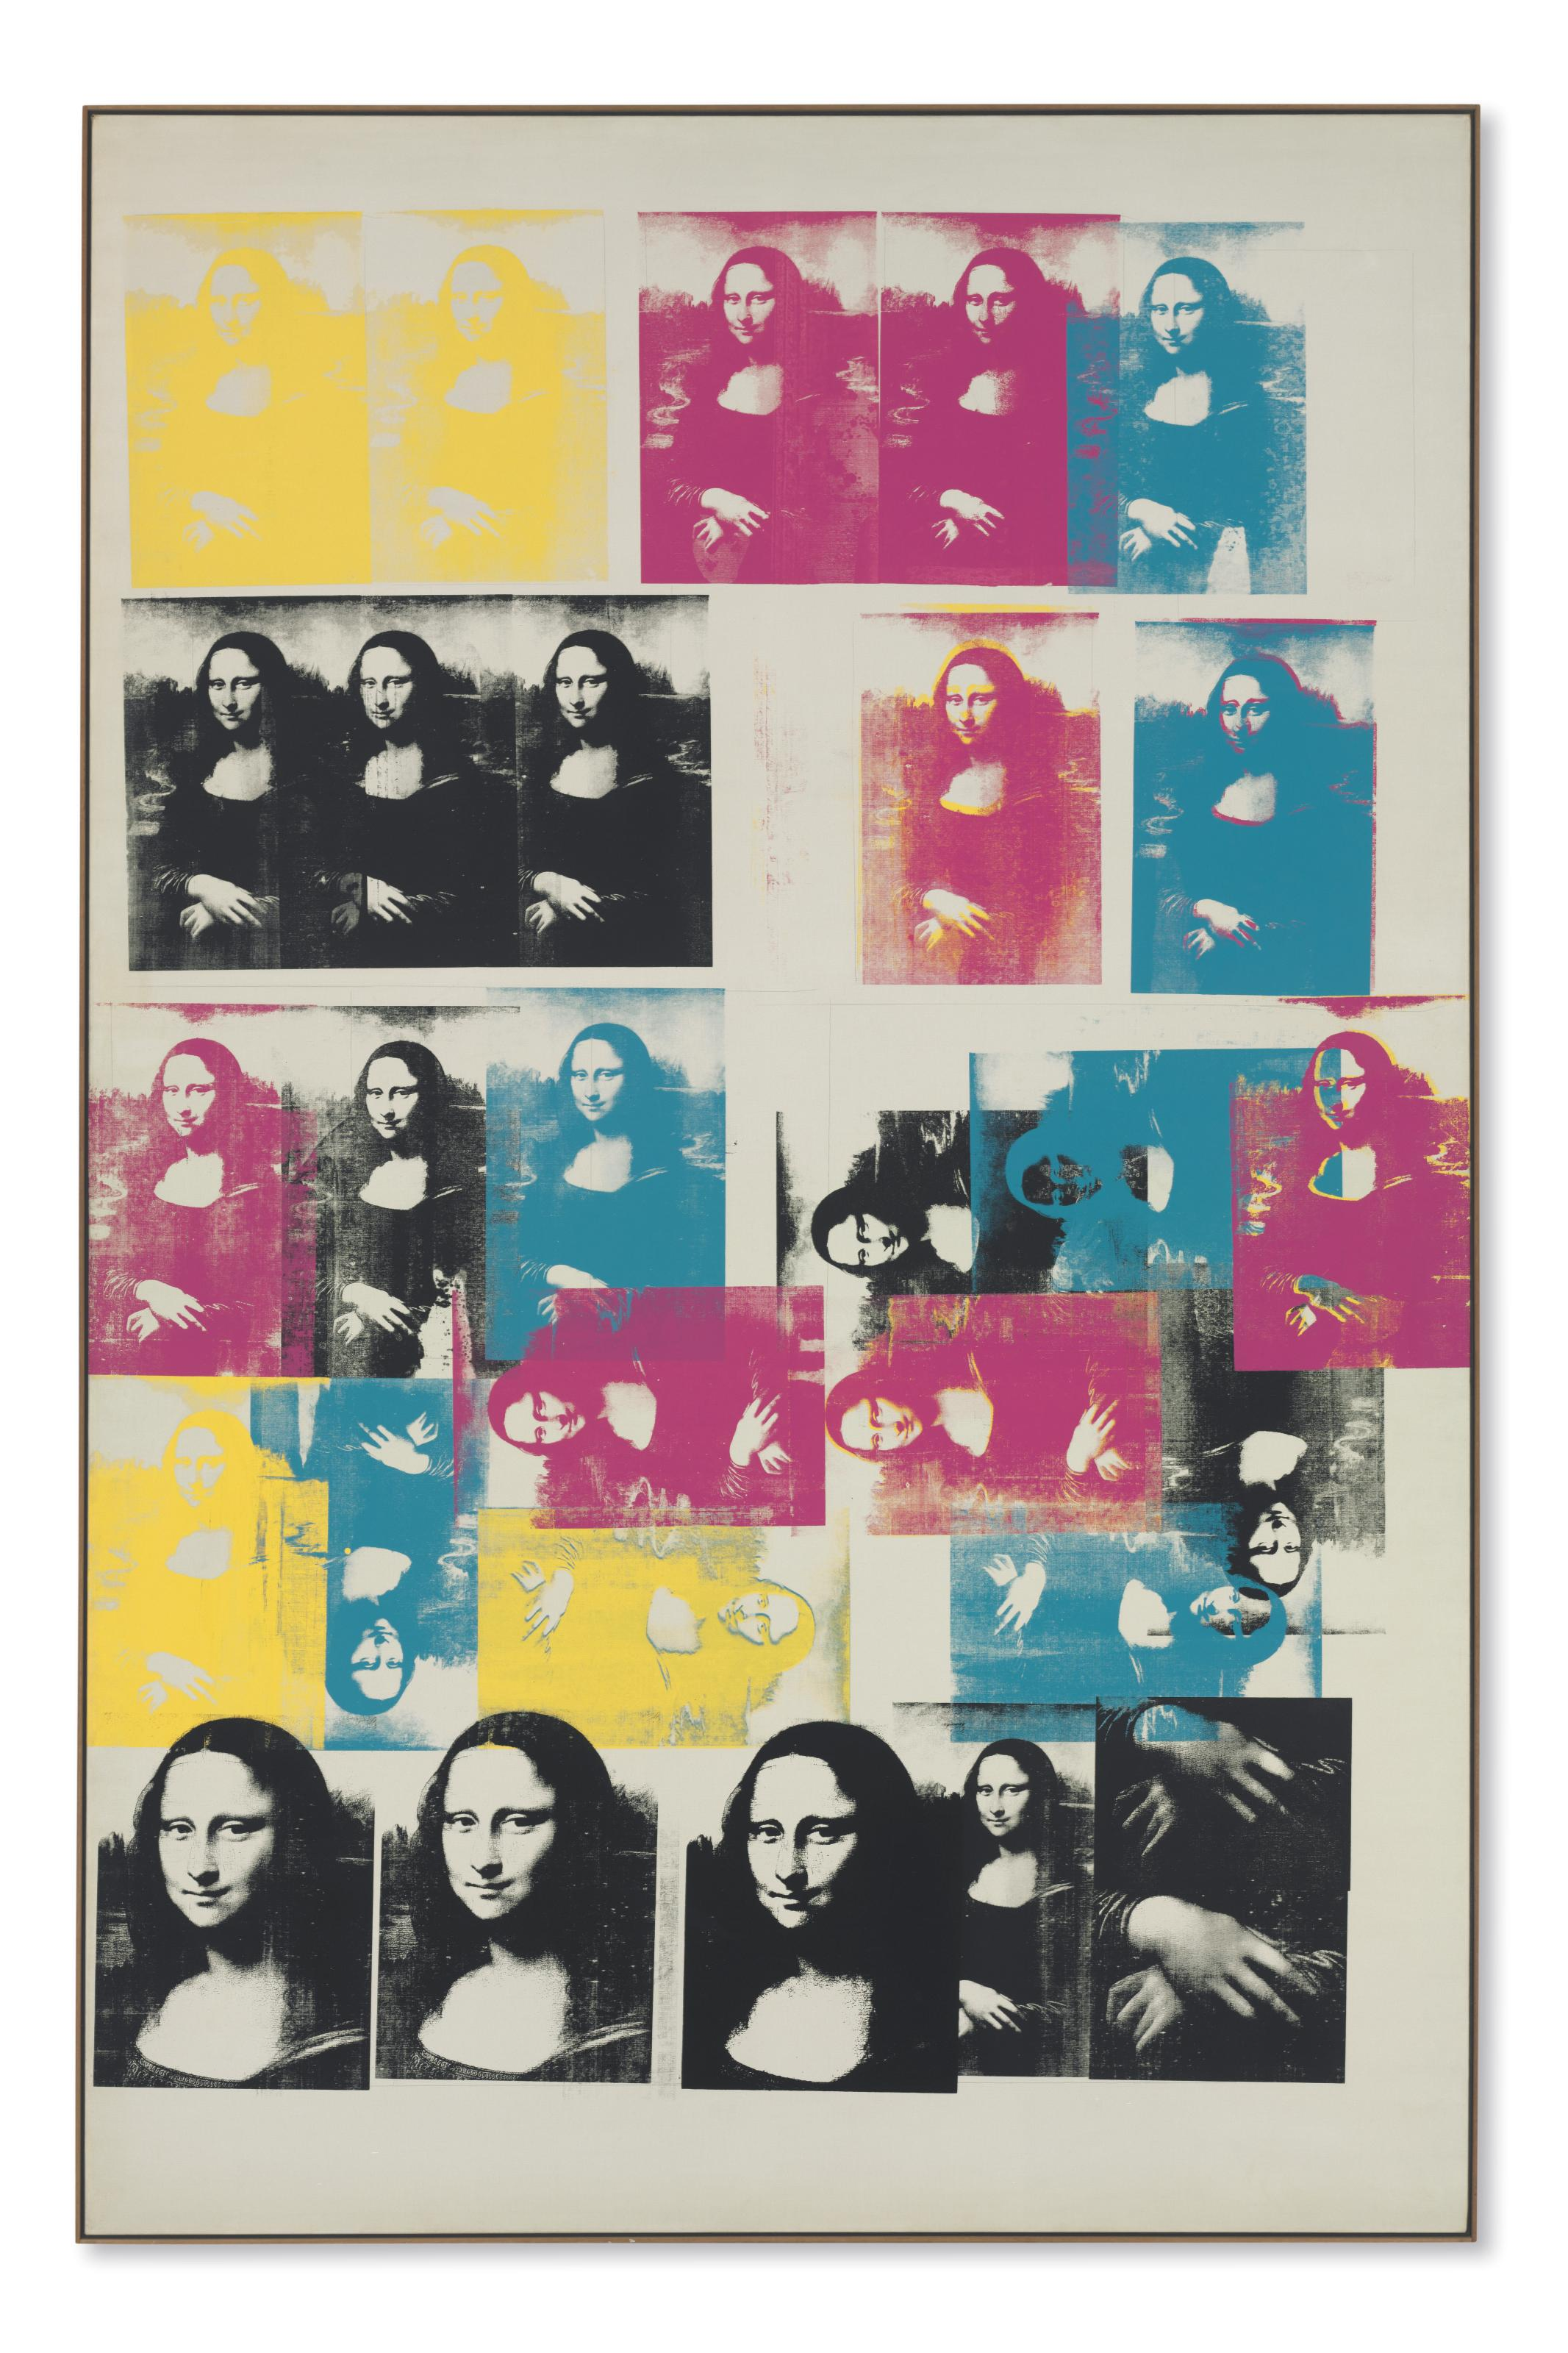 Fabuleux Andy Warhol (1928-1987) | Colored Mona Lisa | 1960s, Paintings &QS_78